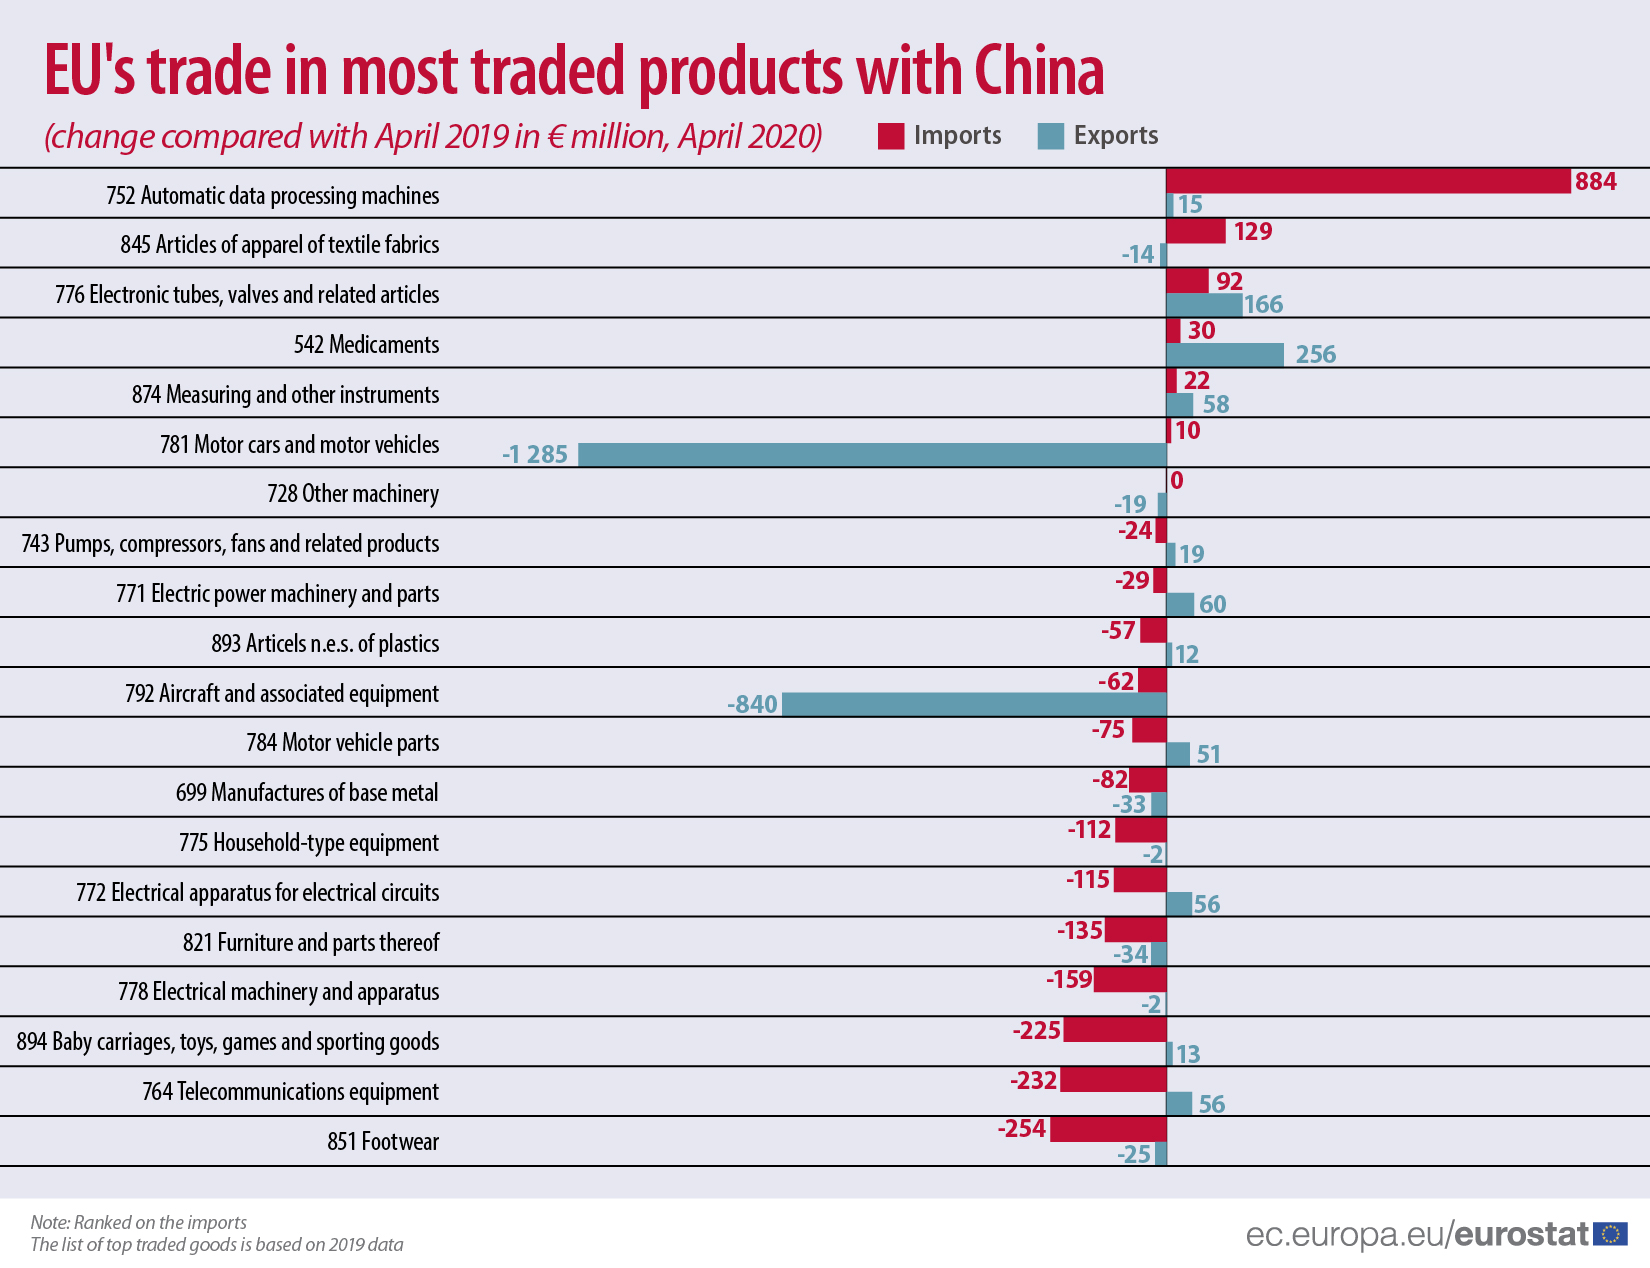 EU's trade in most traded products with China